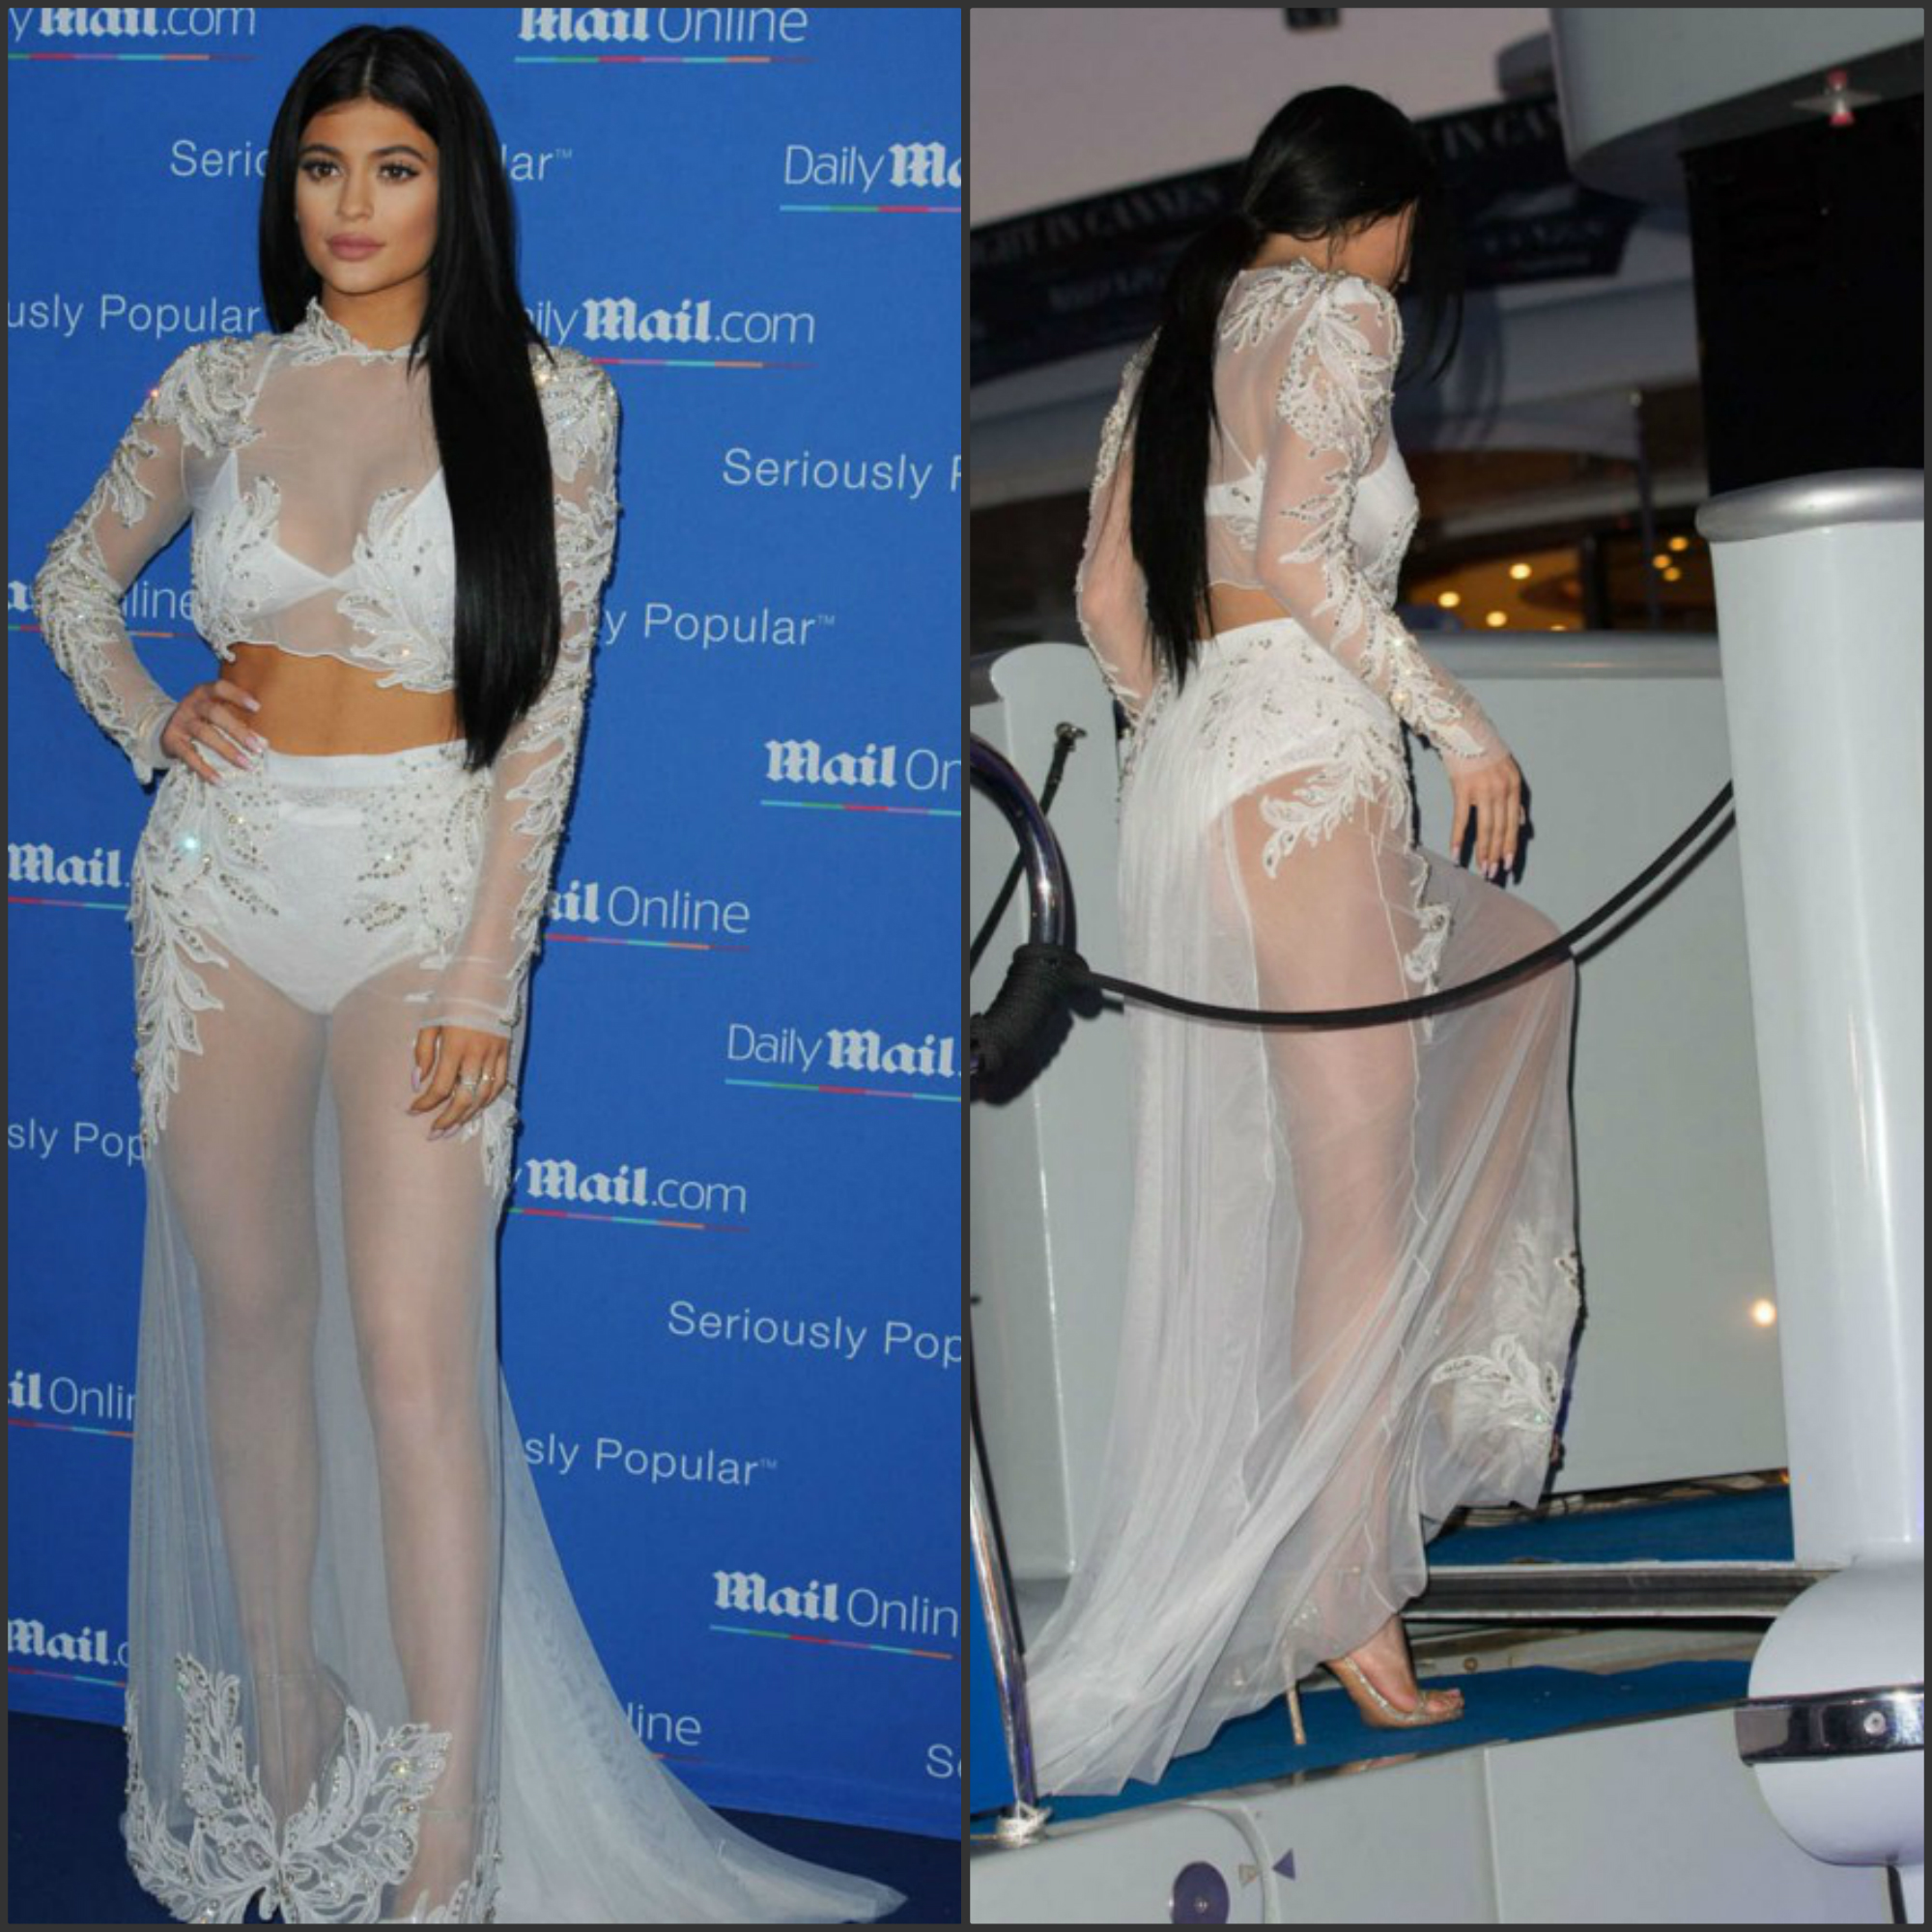 kylie-jenner-in-sheer-gown-daily-mail-yacht-party-in-cannes